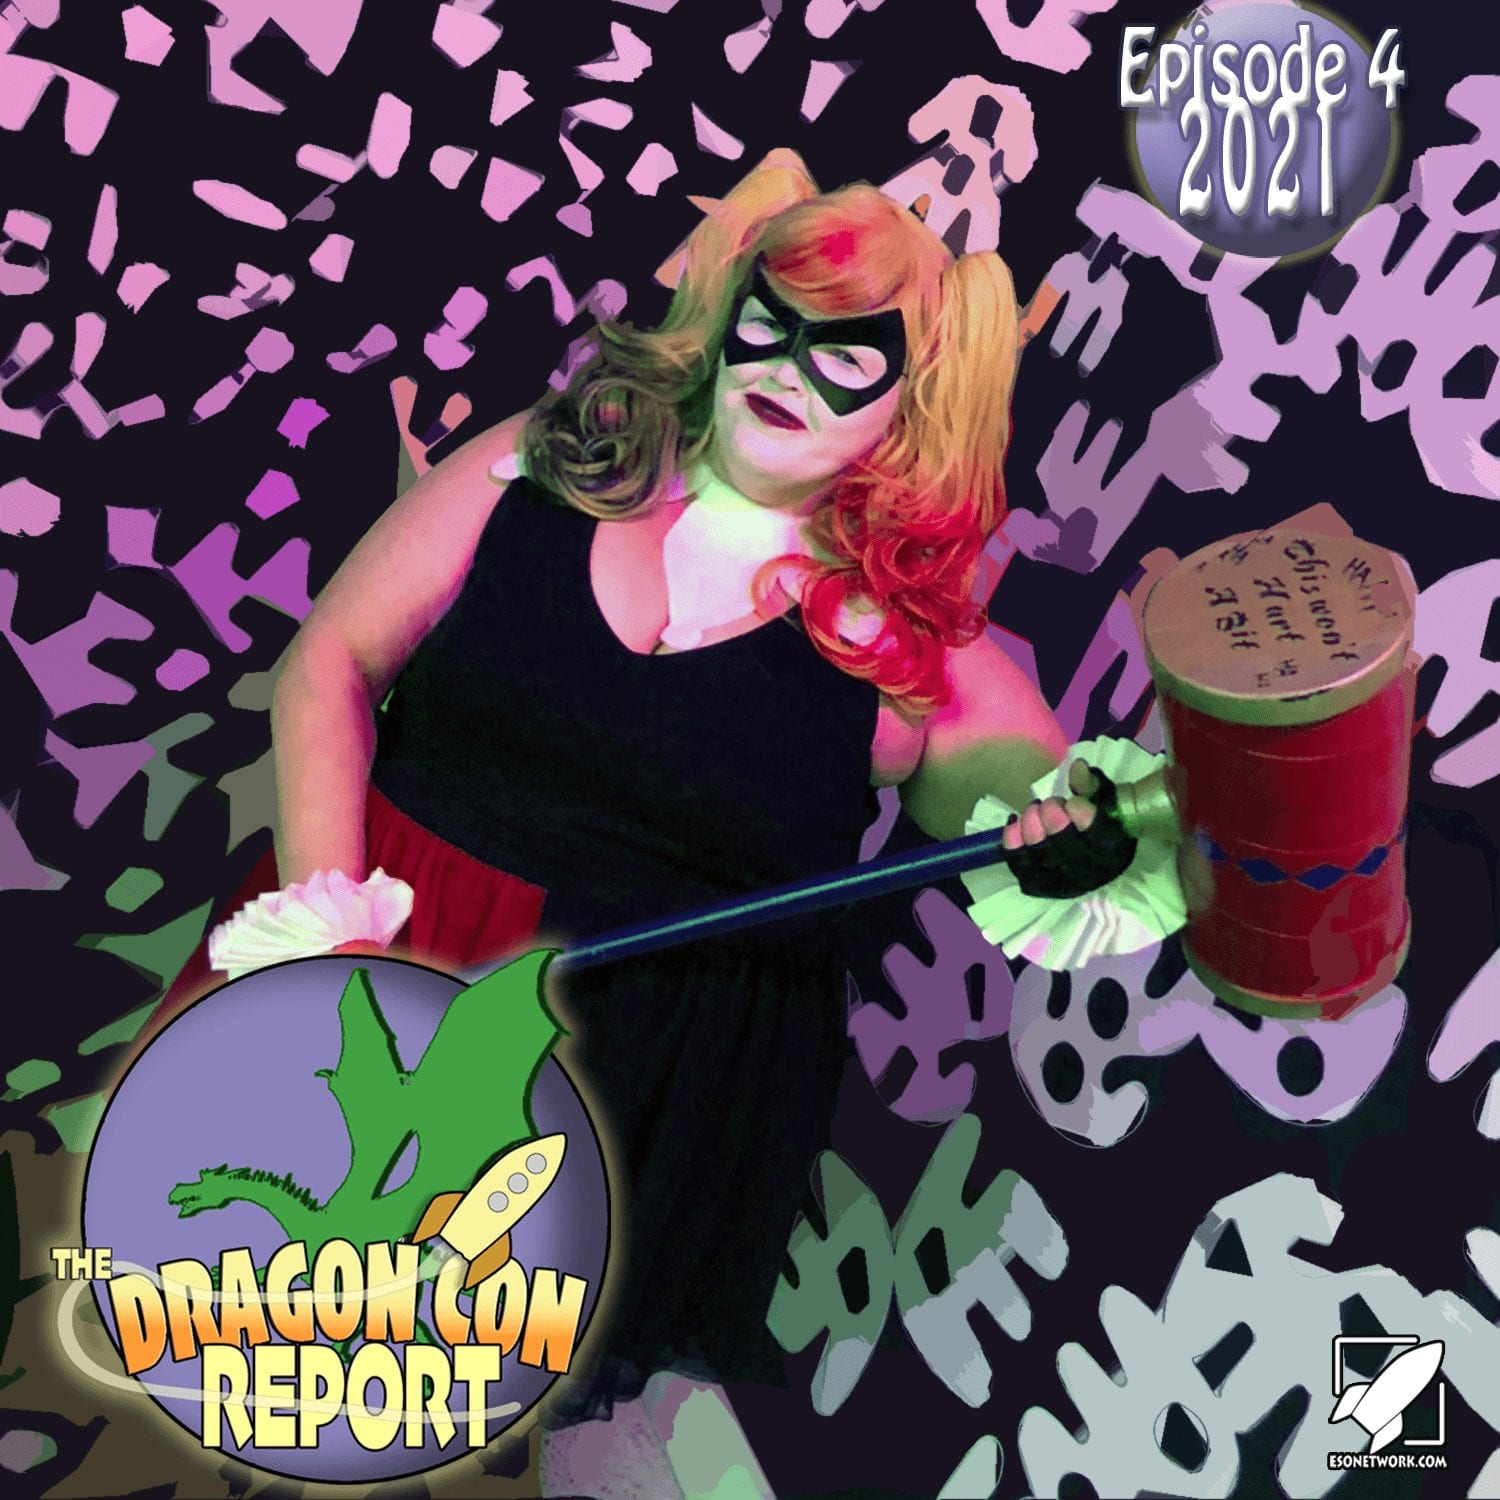 The 2021 Dragon Con Report Ep 4